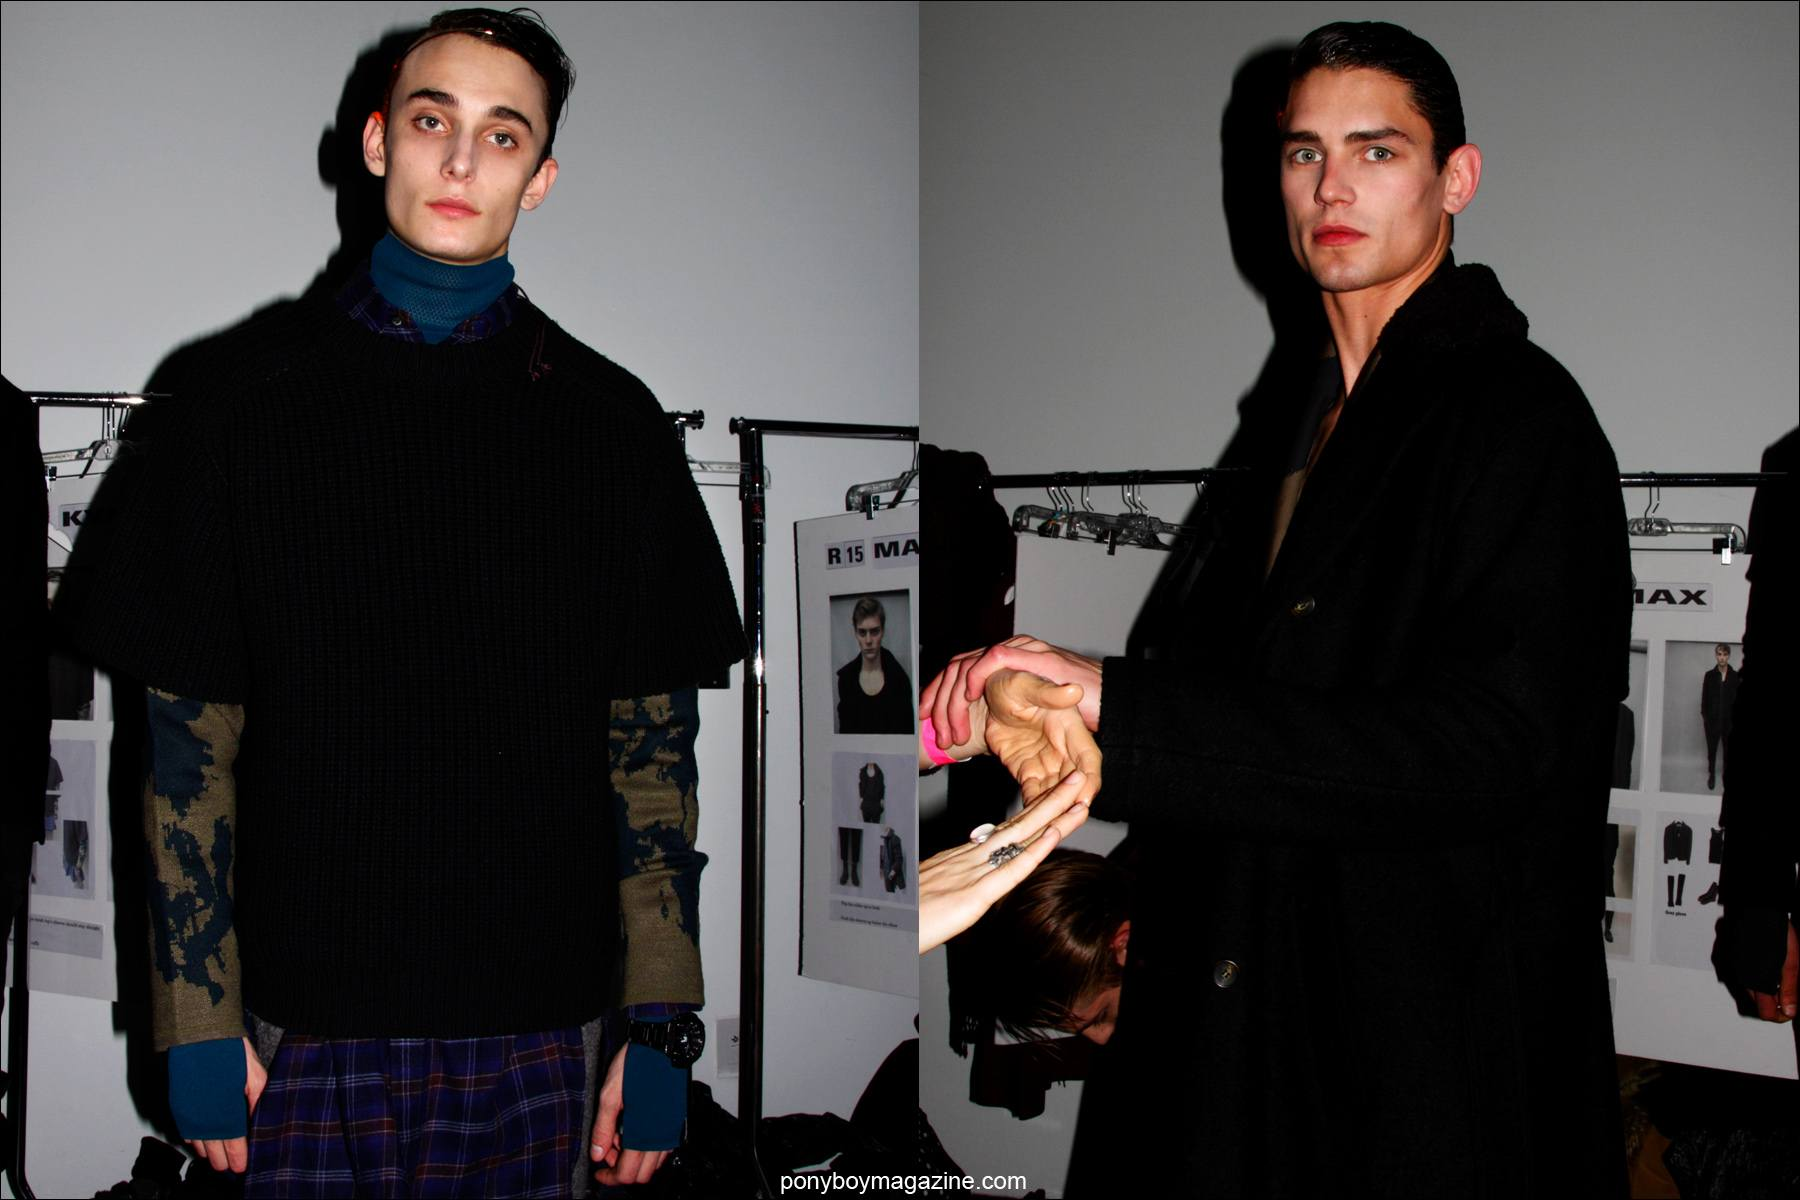 Male models Kyle Mobus and Arthur Gosse photographed backstage at the Robert Geller Fall/Winter 2015 collection. Photographs by Alexander Thompson for Ponyboy magazine.